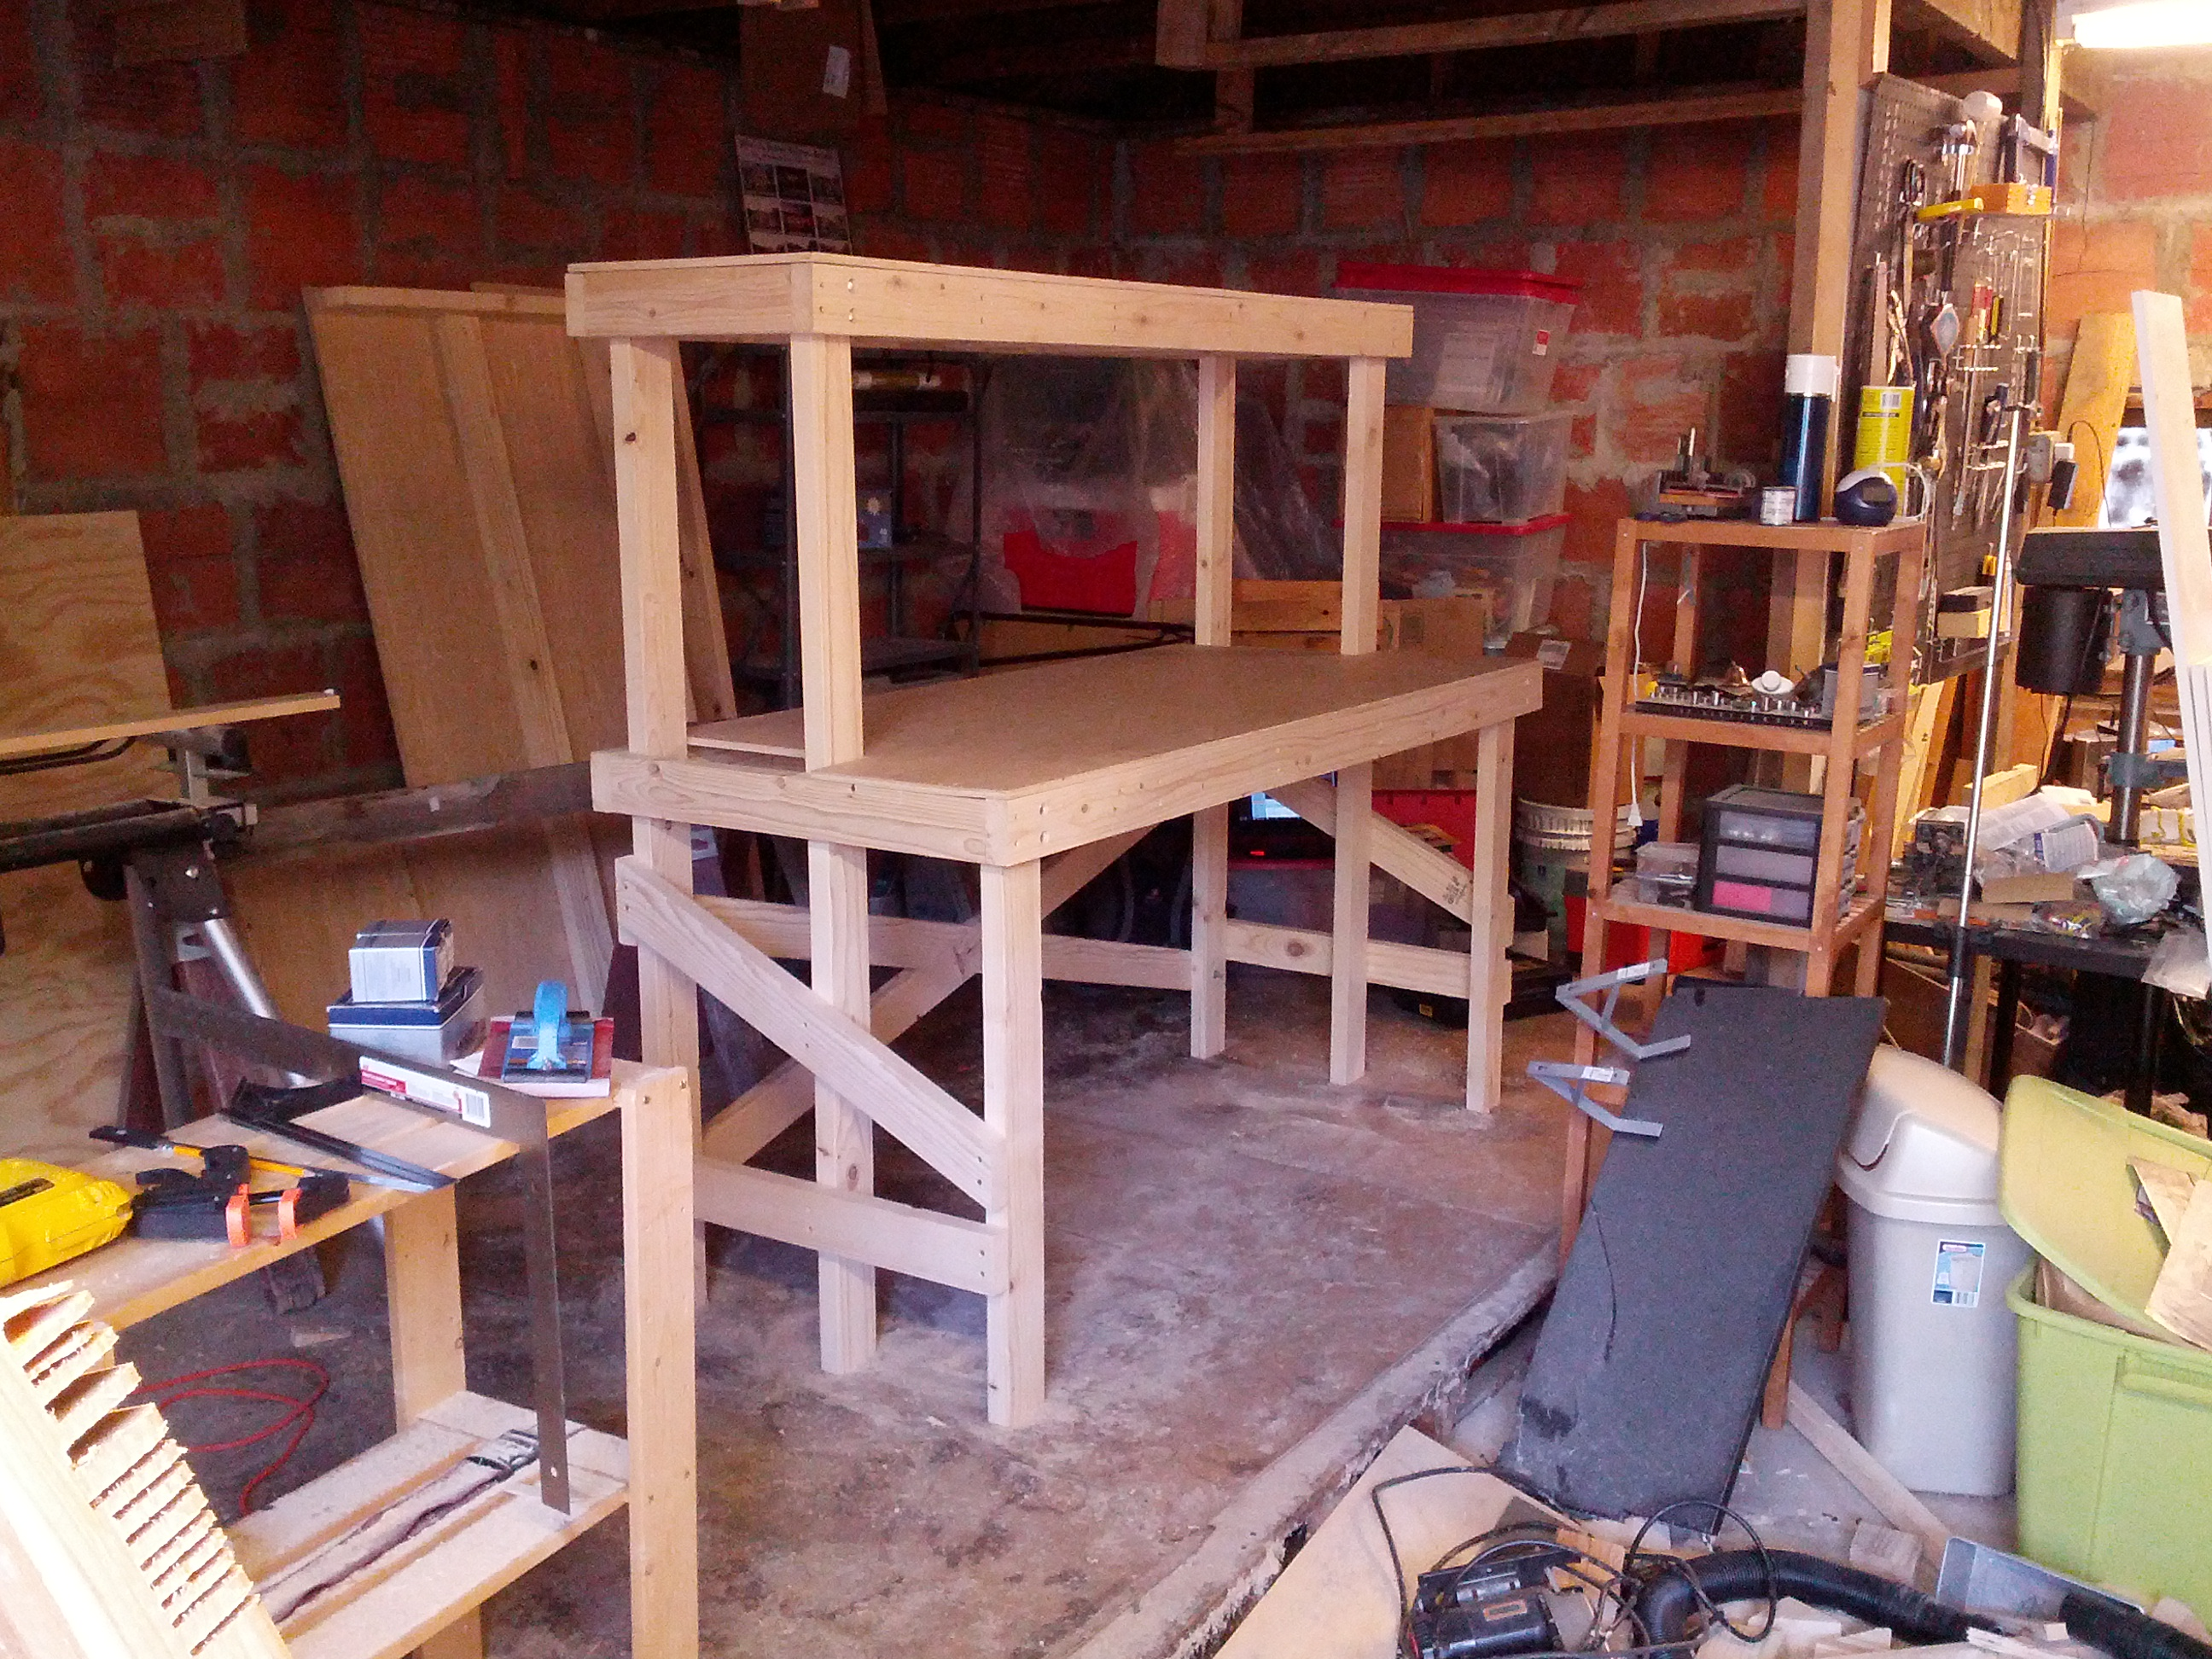 Enginursday: Adventures in Building My Own Workbench Part